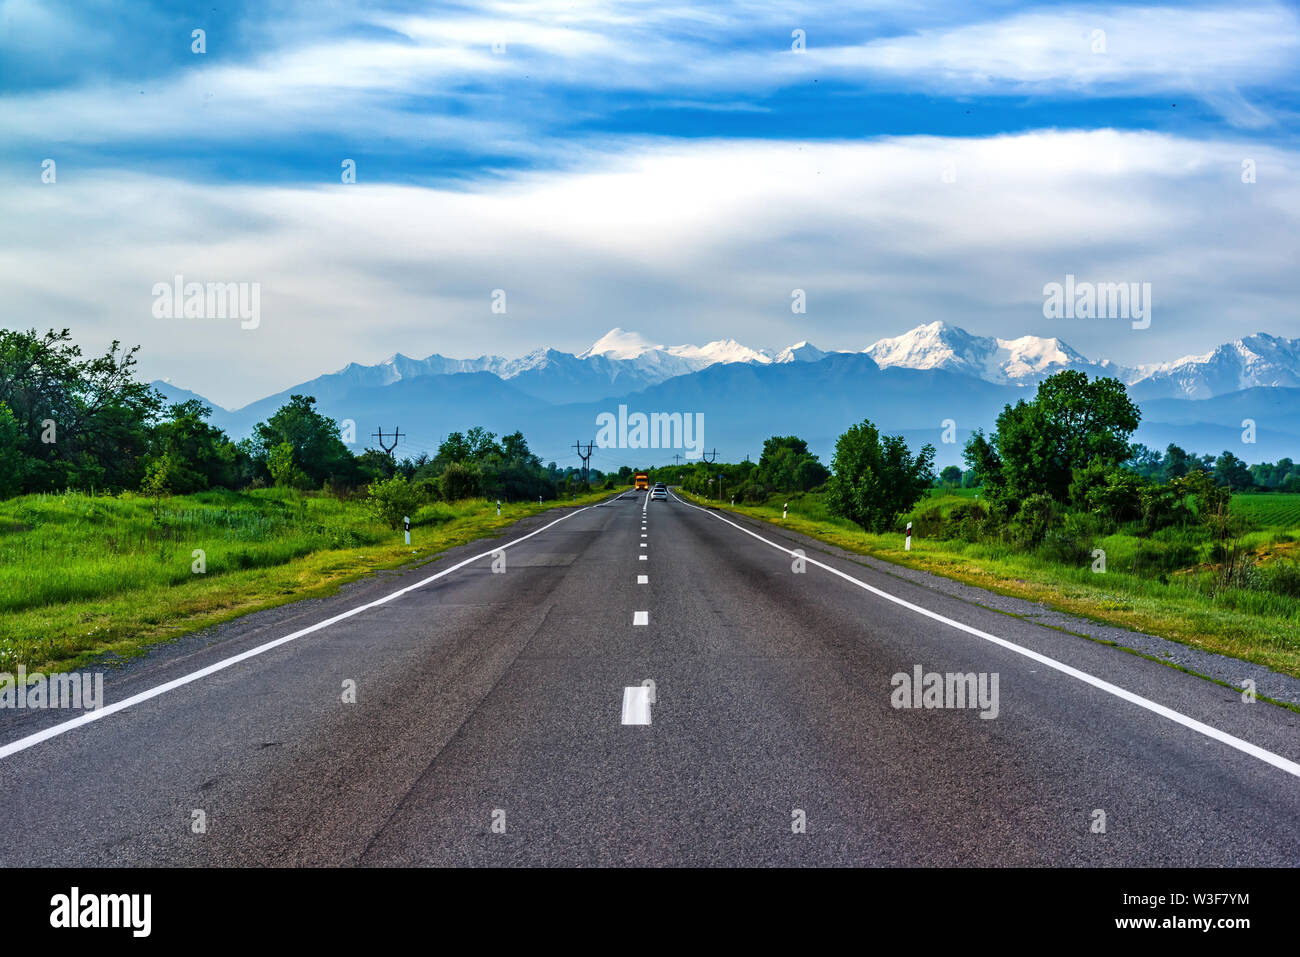 North Ossetia Republic, Russia - June 2019: Landscape with a road passing through the picturesque gorge and snow-capped peaks in the background. Fiagd - Stock Image